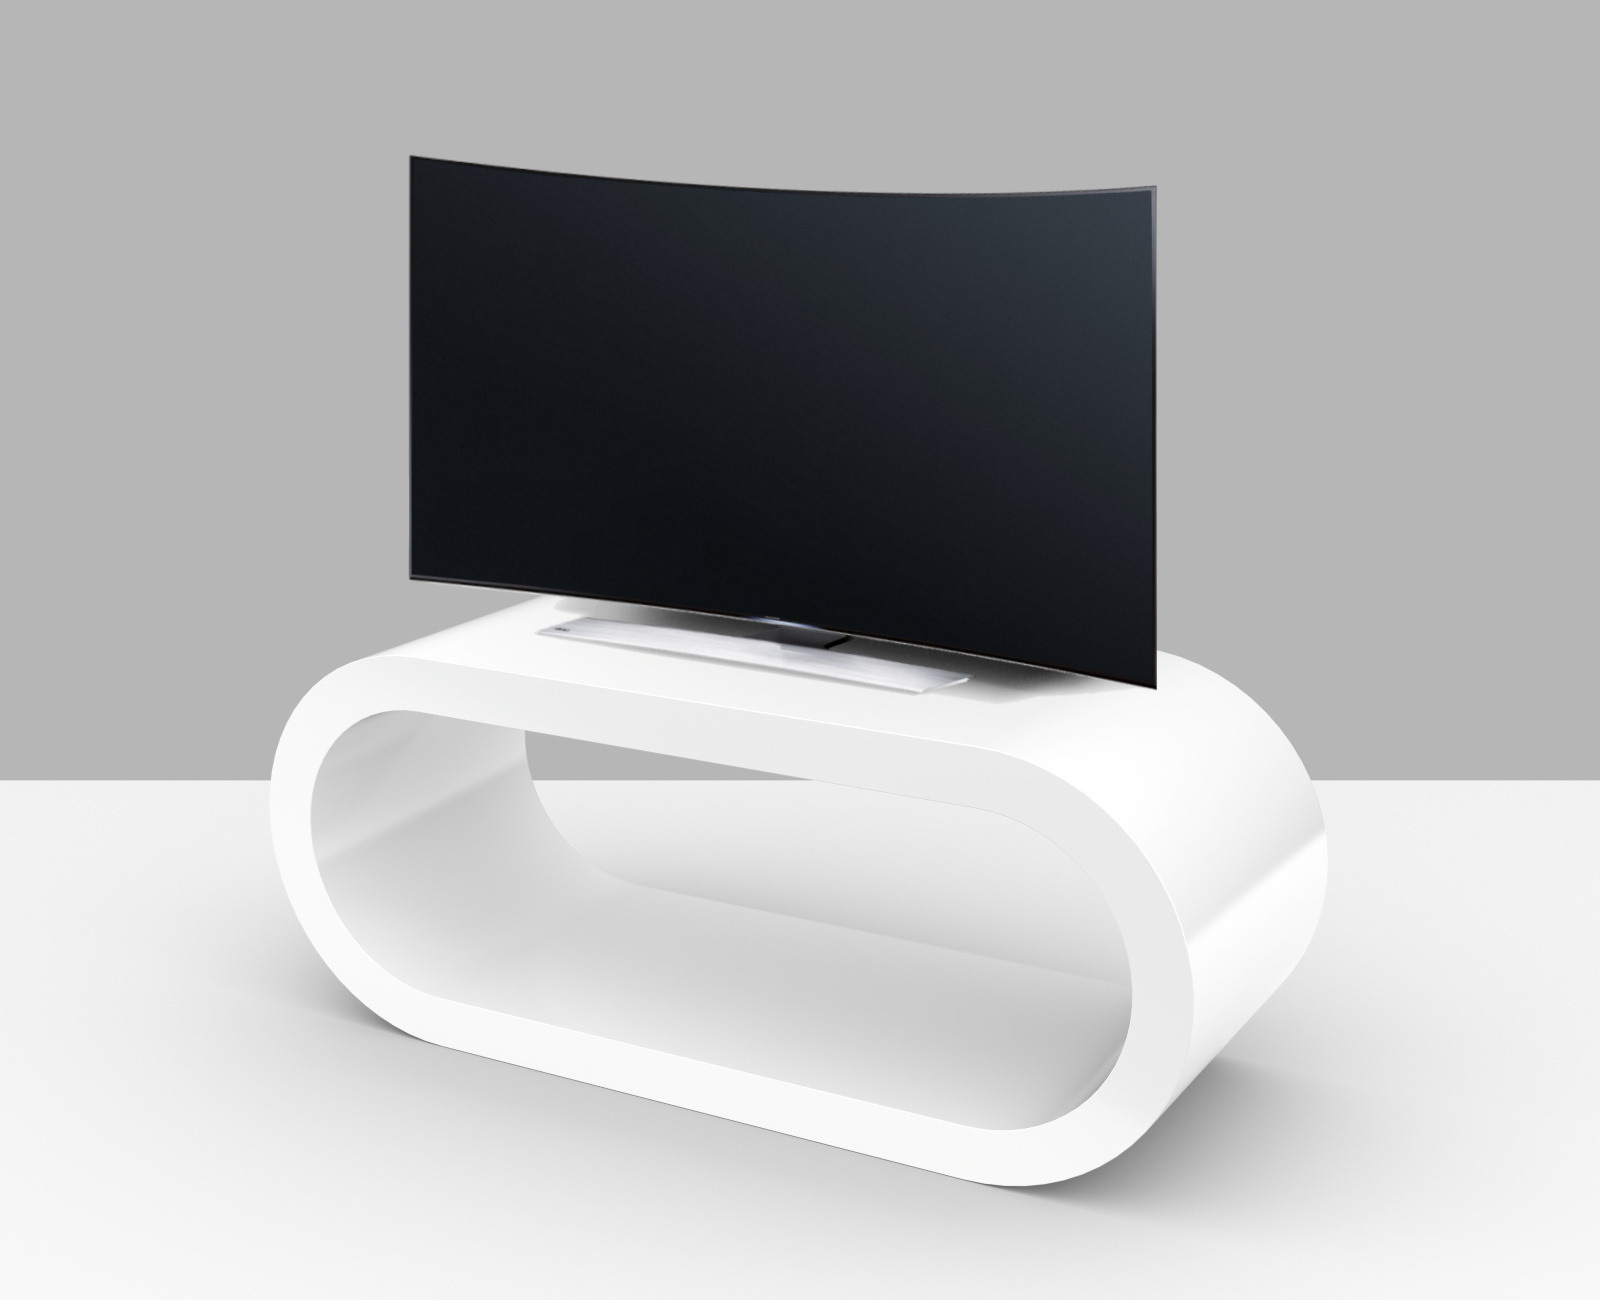 White Gloss Oval Tv Stands Inside Most Current Custom Tv Stands (View 20 of 20)